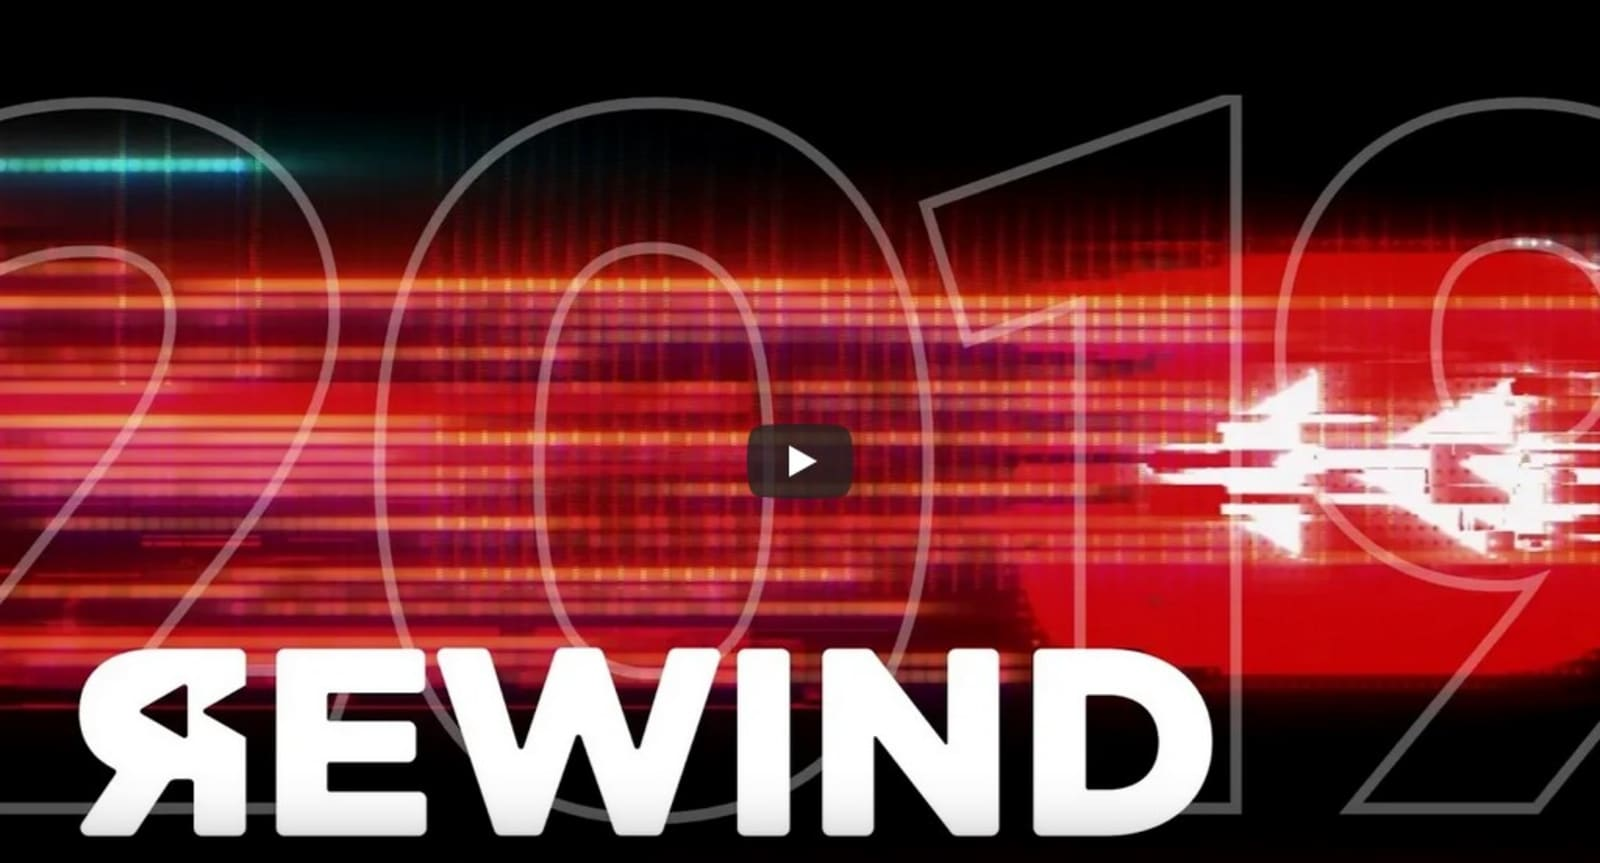 YouTube's Rewind 2019 video learns from last year's mistakes